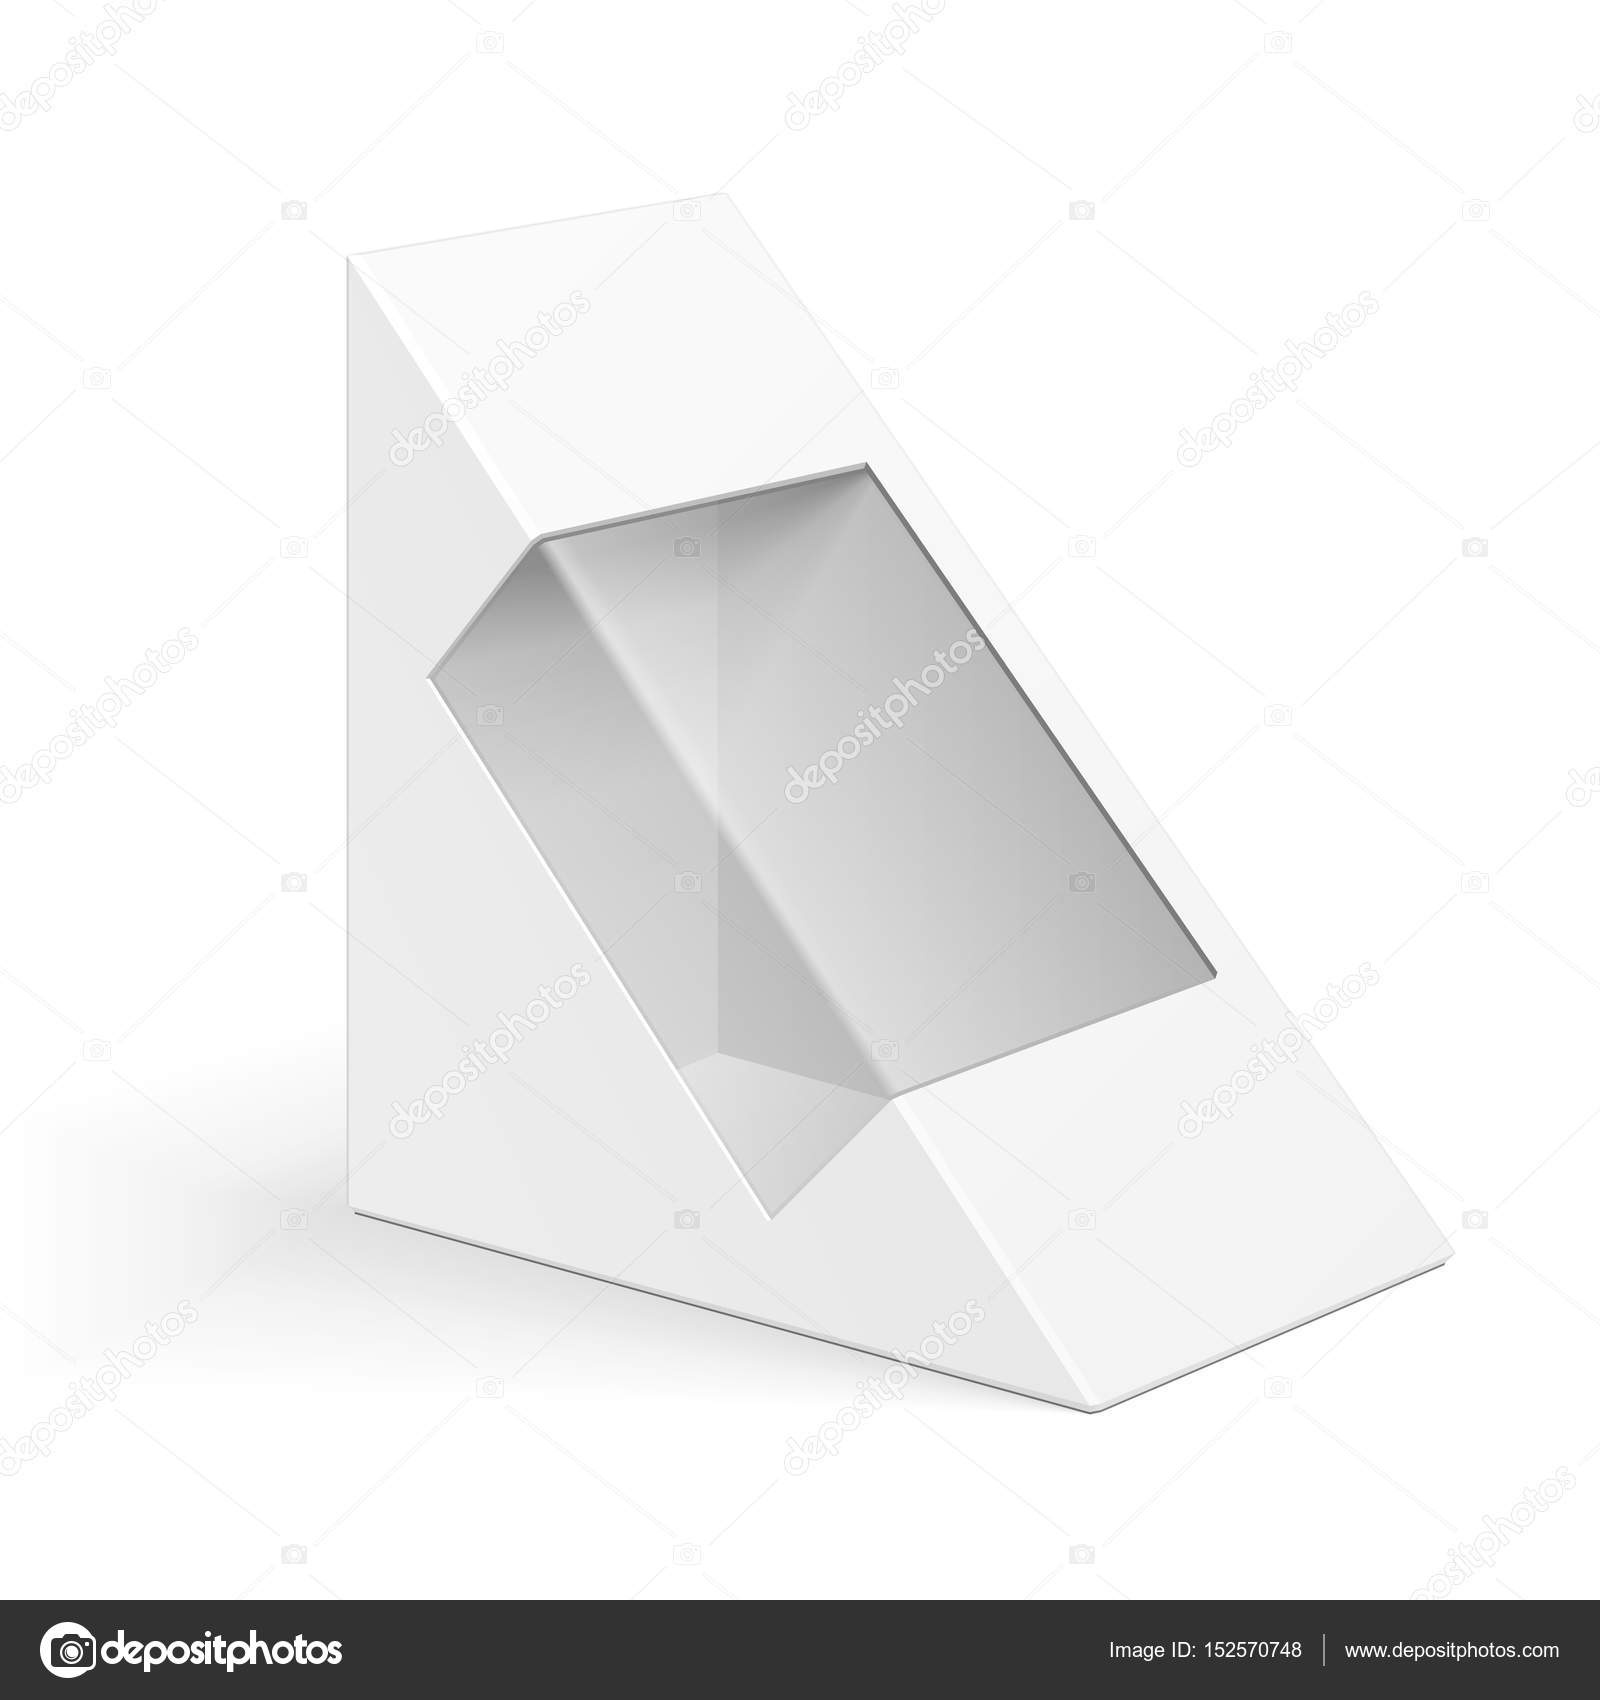 white cardboard triangle box packaging for sandwich food gift or